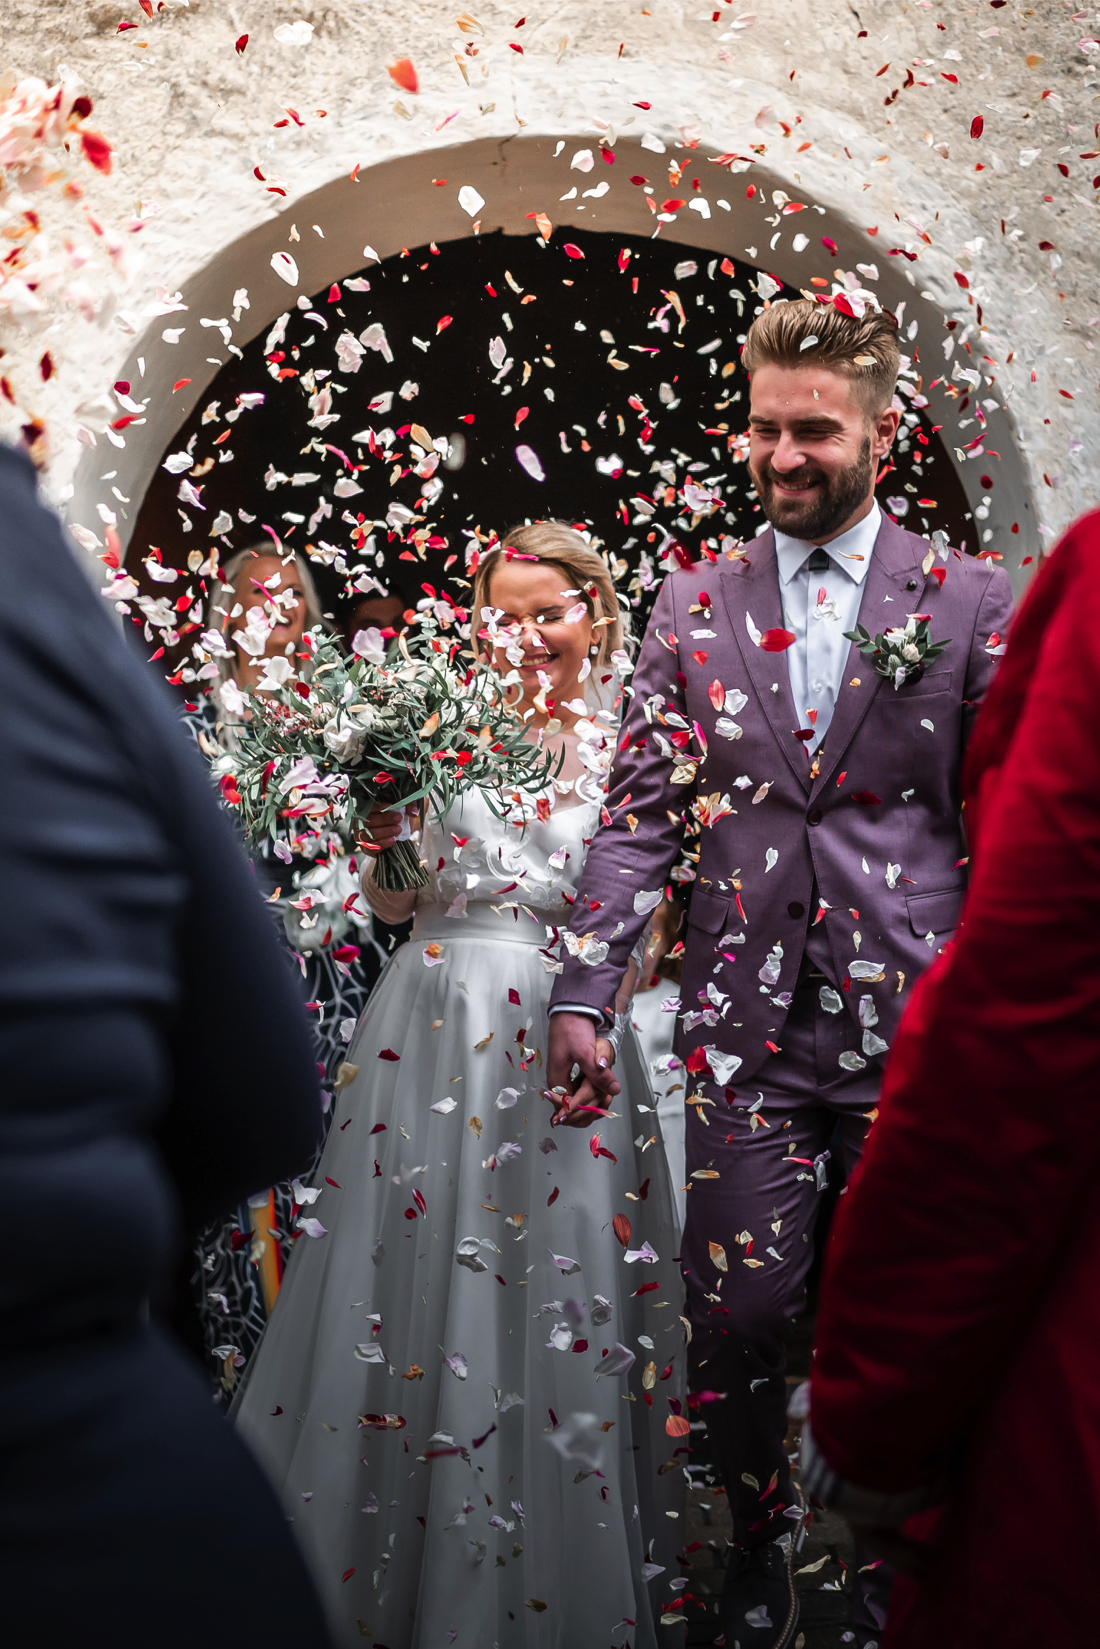 confetti-wedding-exit-ideas_2.jpg